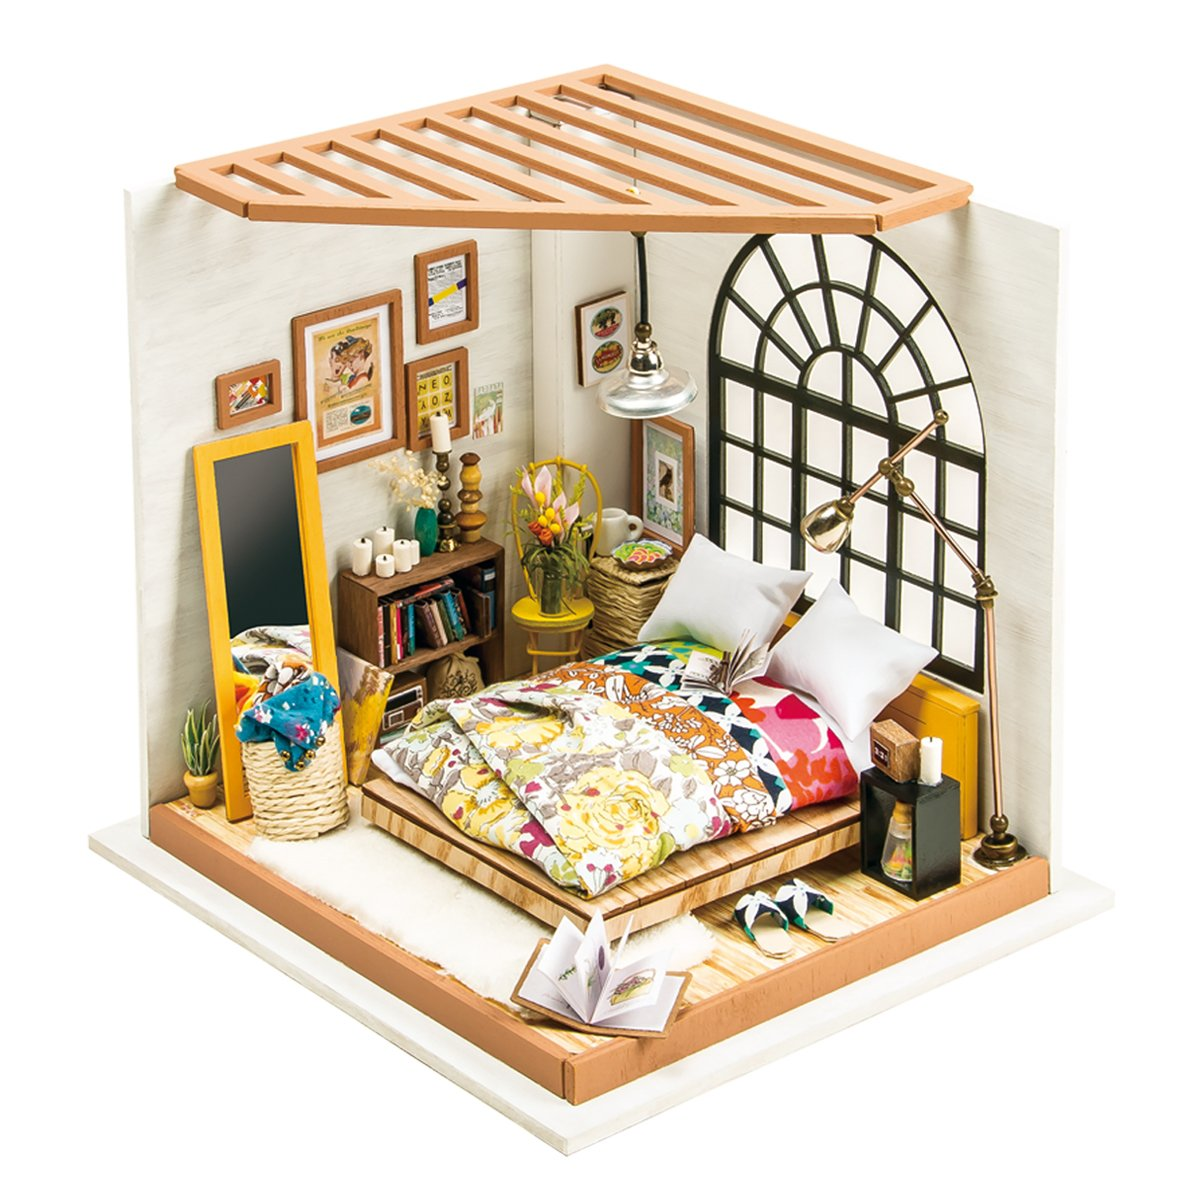 ROBOTIME DIY Dollhouse Kit Miniature Dreamy Bedroom Kits to Build Great Toy  Gift for Kids & Adults